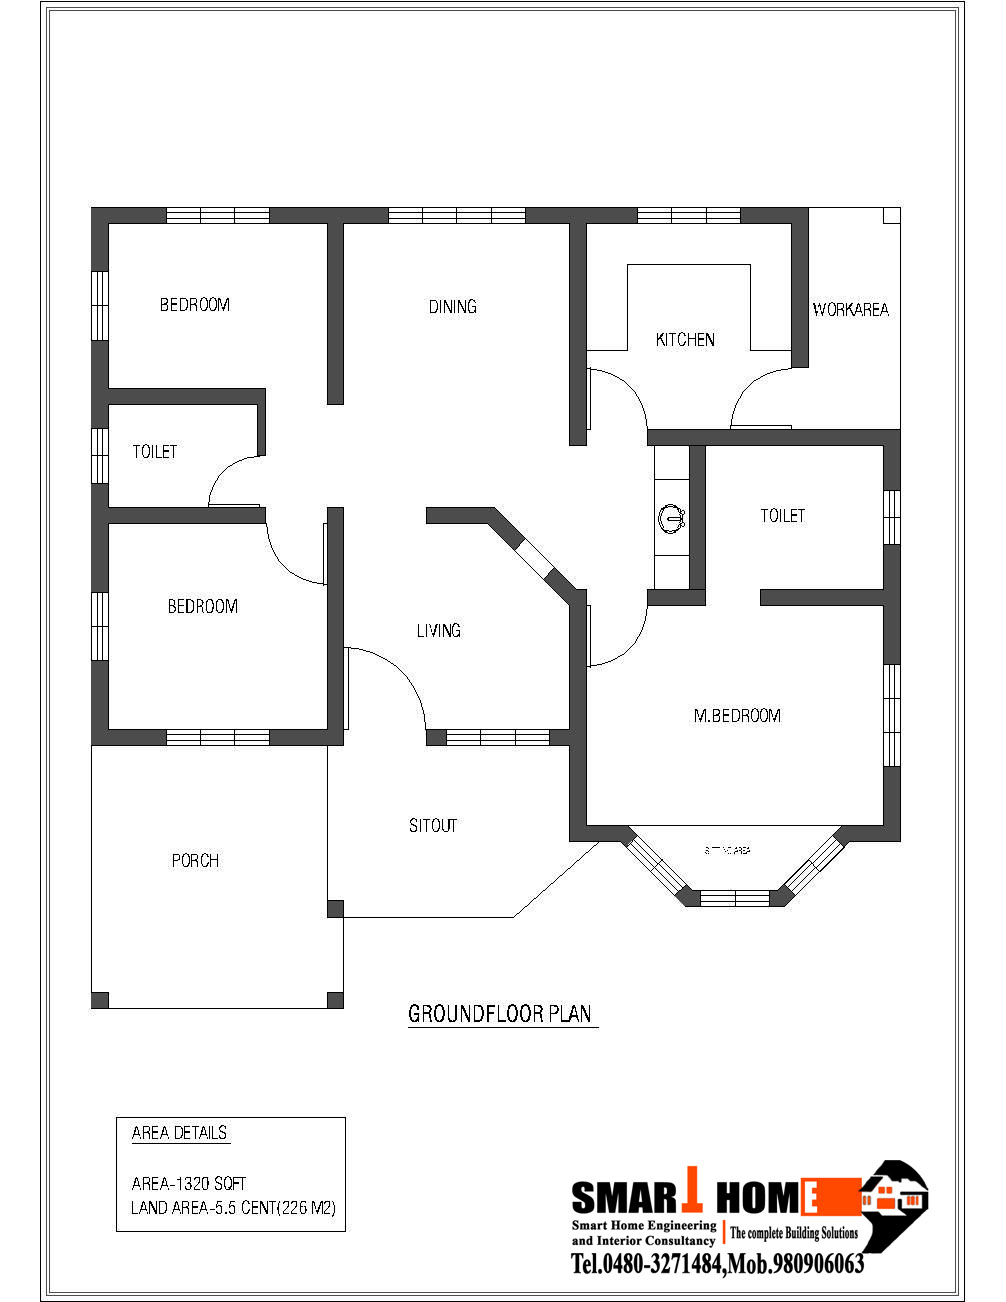 1320%2BSqft%2BKerala%2Bstyle%2B3%2BBedroom%2BHouse%2BPlan%2Bfrom%2BSmart%2Bhome%2BGF%2BPLAN single family home plans designs home plan,Single Family Home Plans Designs